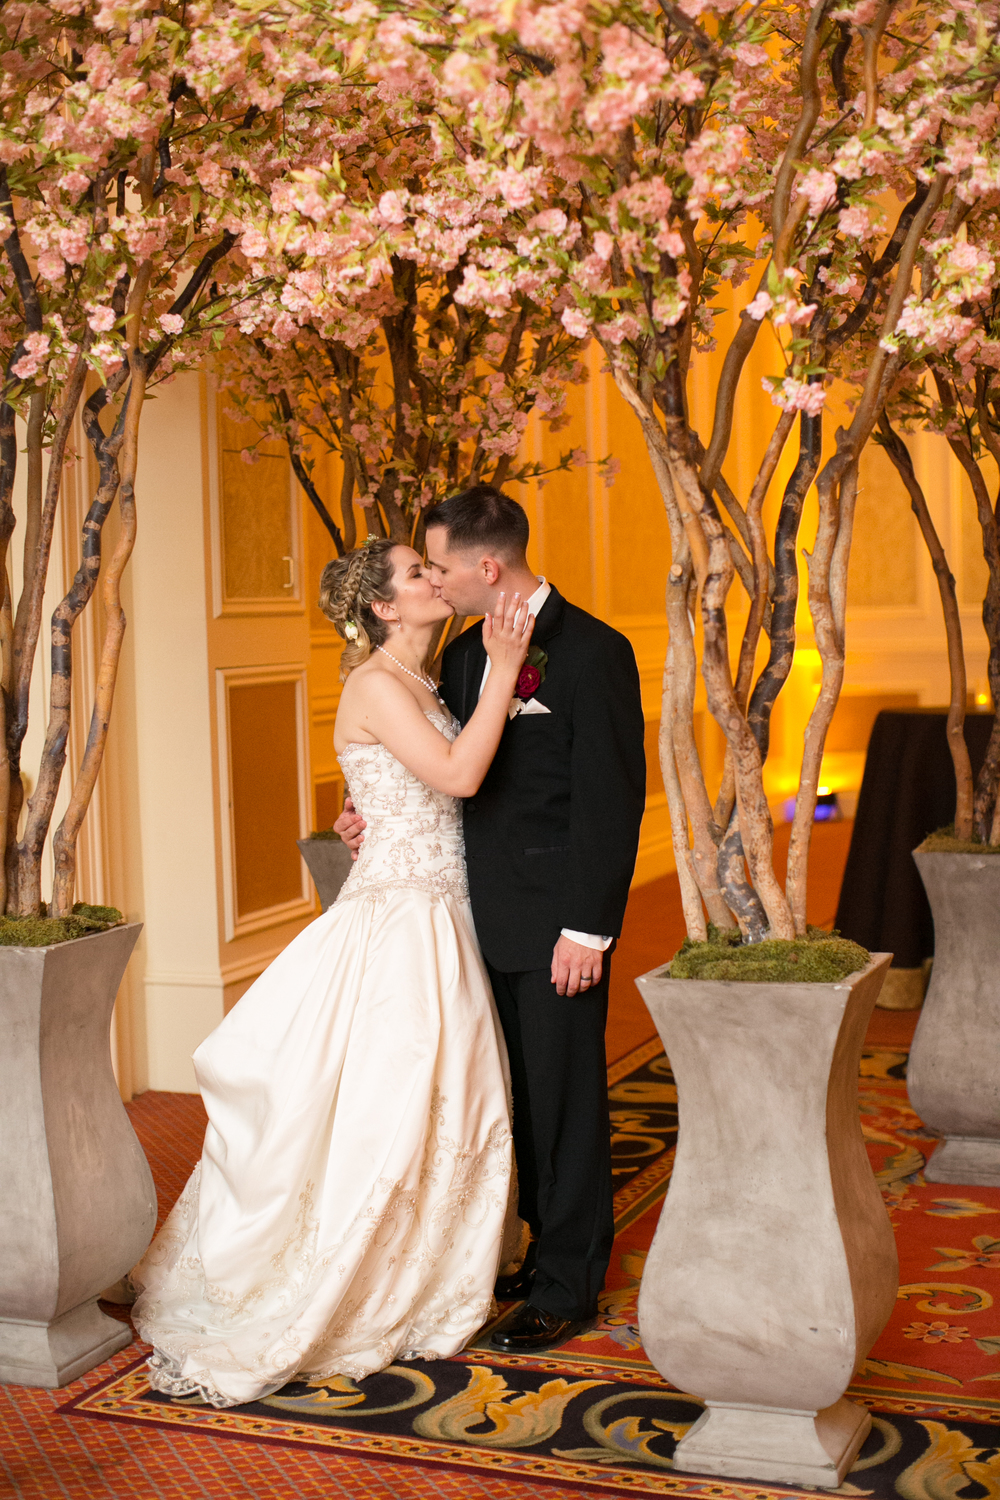 Cherry Blossoms created a romantic entrance for this wedding at The Venetian.  Las Vegas Wedding Planner Andrea Eppolito  |  Wedding at The Venetian Las Vegas  |  Florals and Decor by Naakiti Floral  |  Photos by Meg Ruth